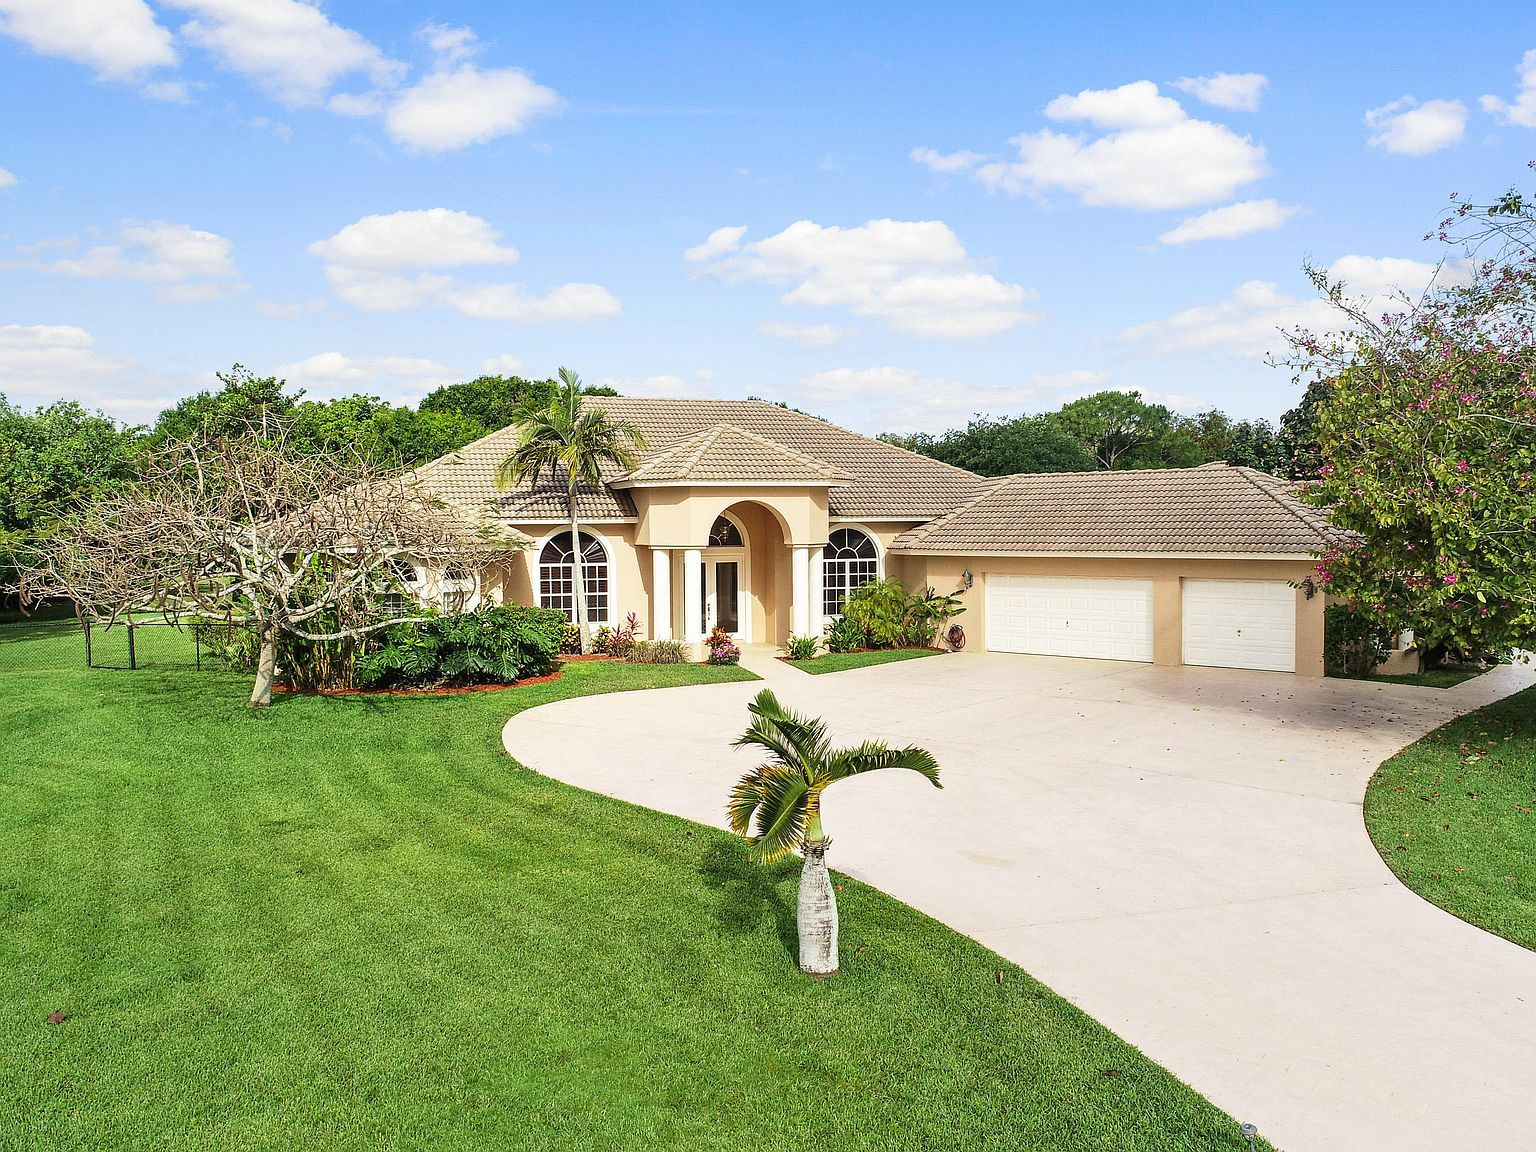 97f80e2dca64d600c98e5214a214b503 - Palm Beach Gardens Cost Of Living